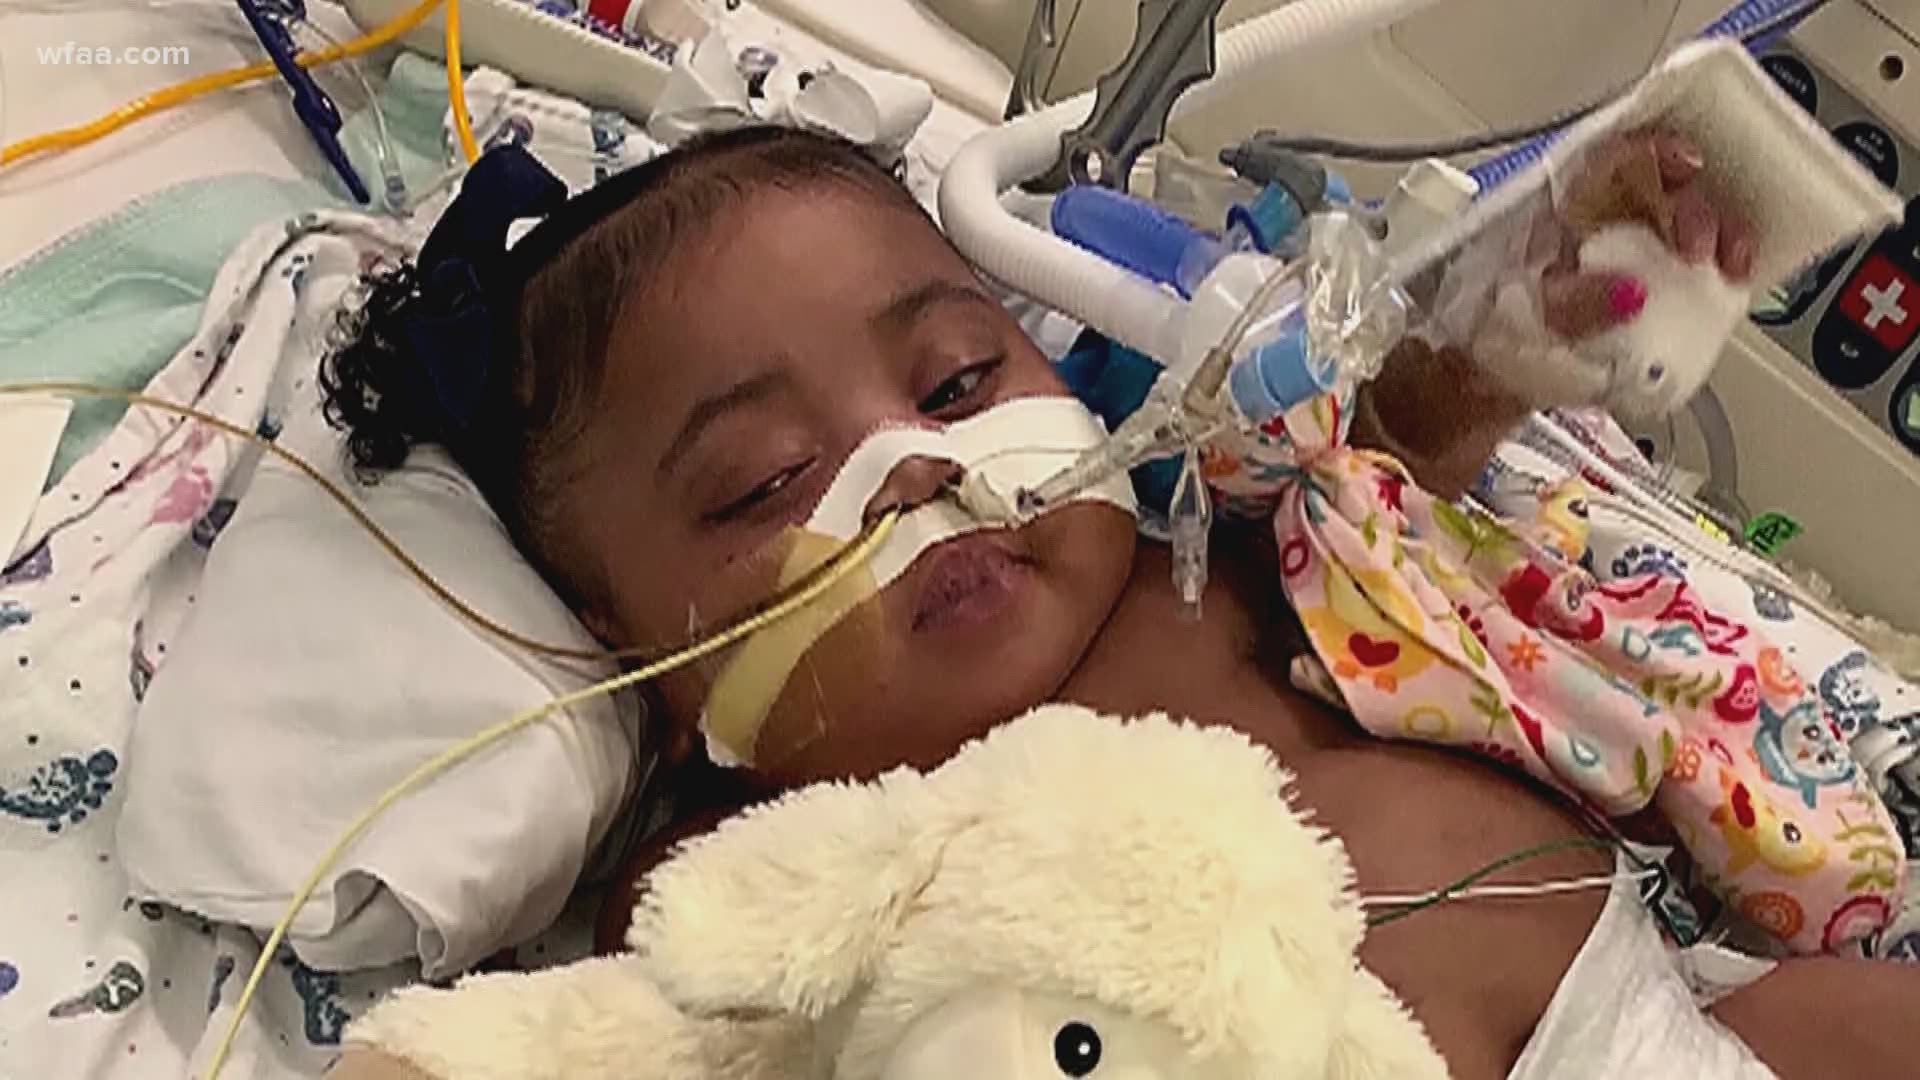 Texas Children's Hospital Asks Supreme Court to Allow Removal of Young Girl's Life Support